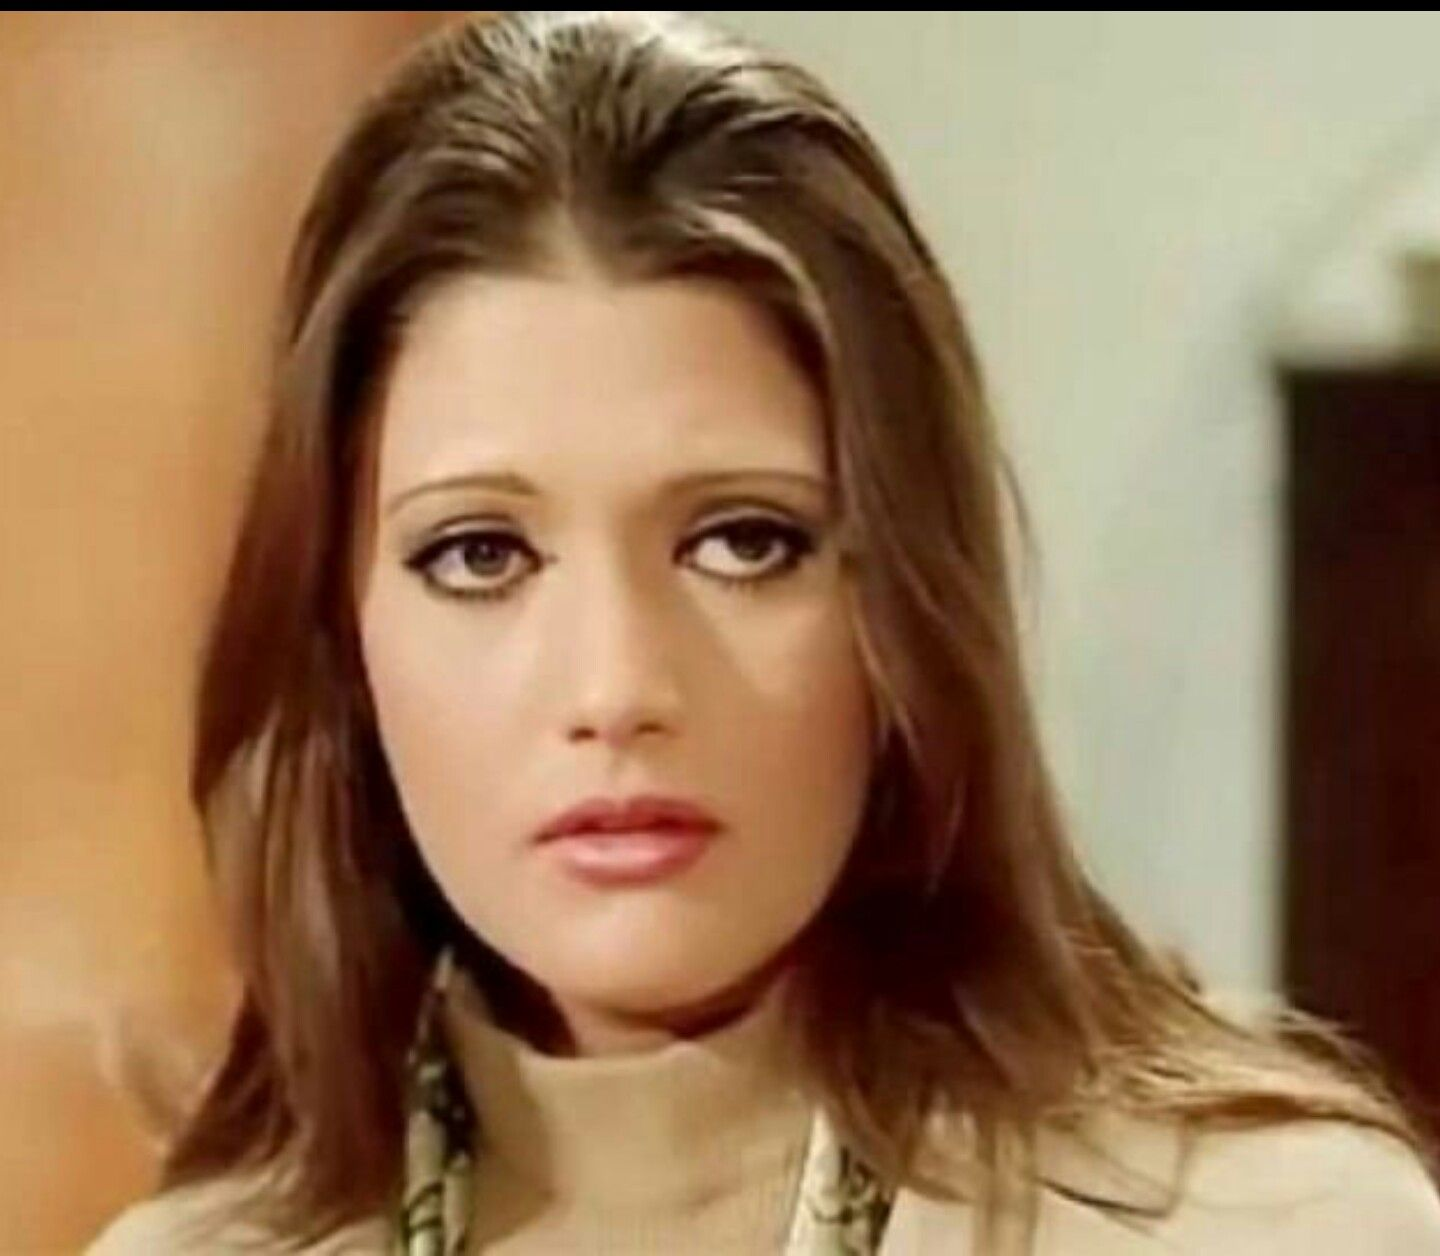 شمس البارودي Egyptian Beauty Egyptian Actress Beauty